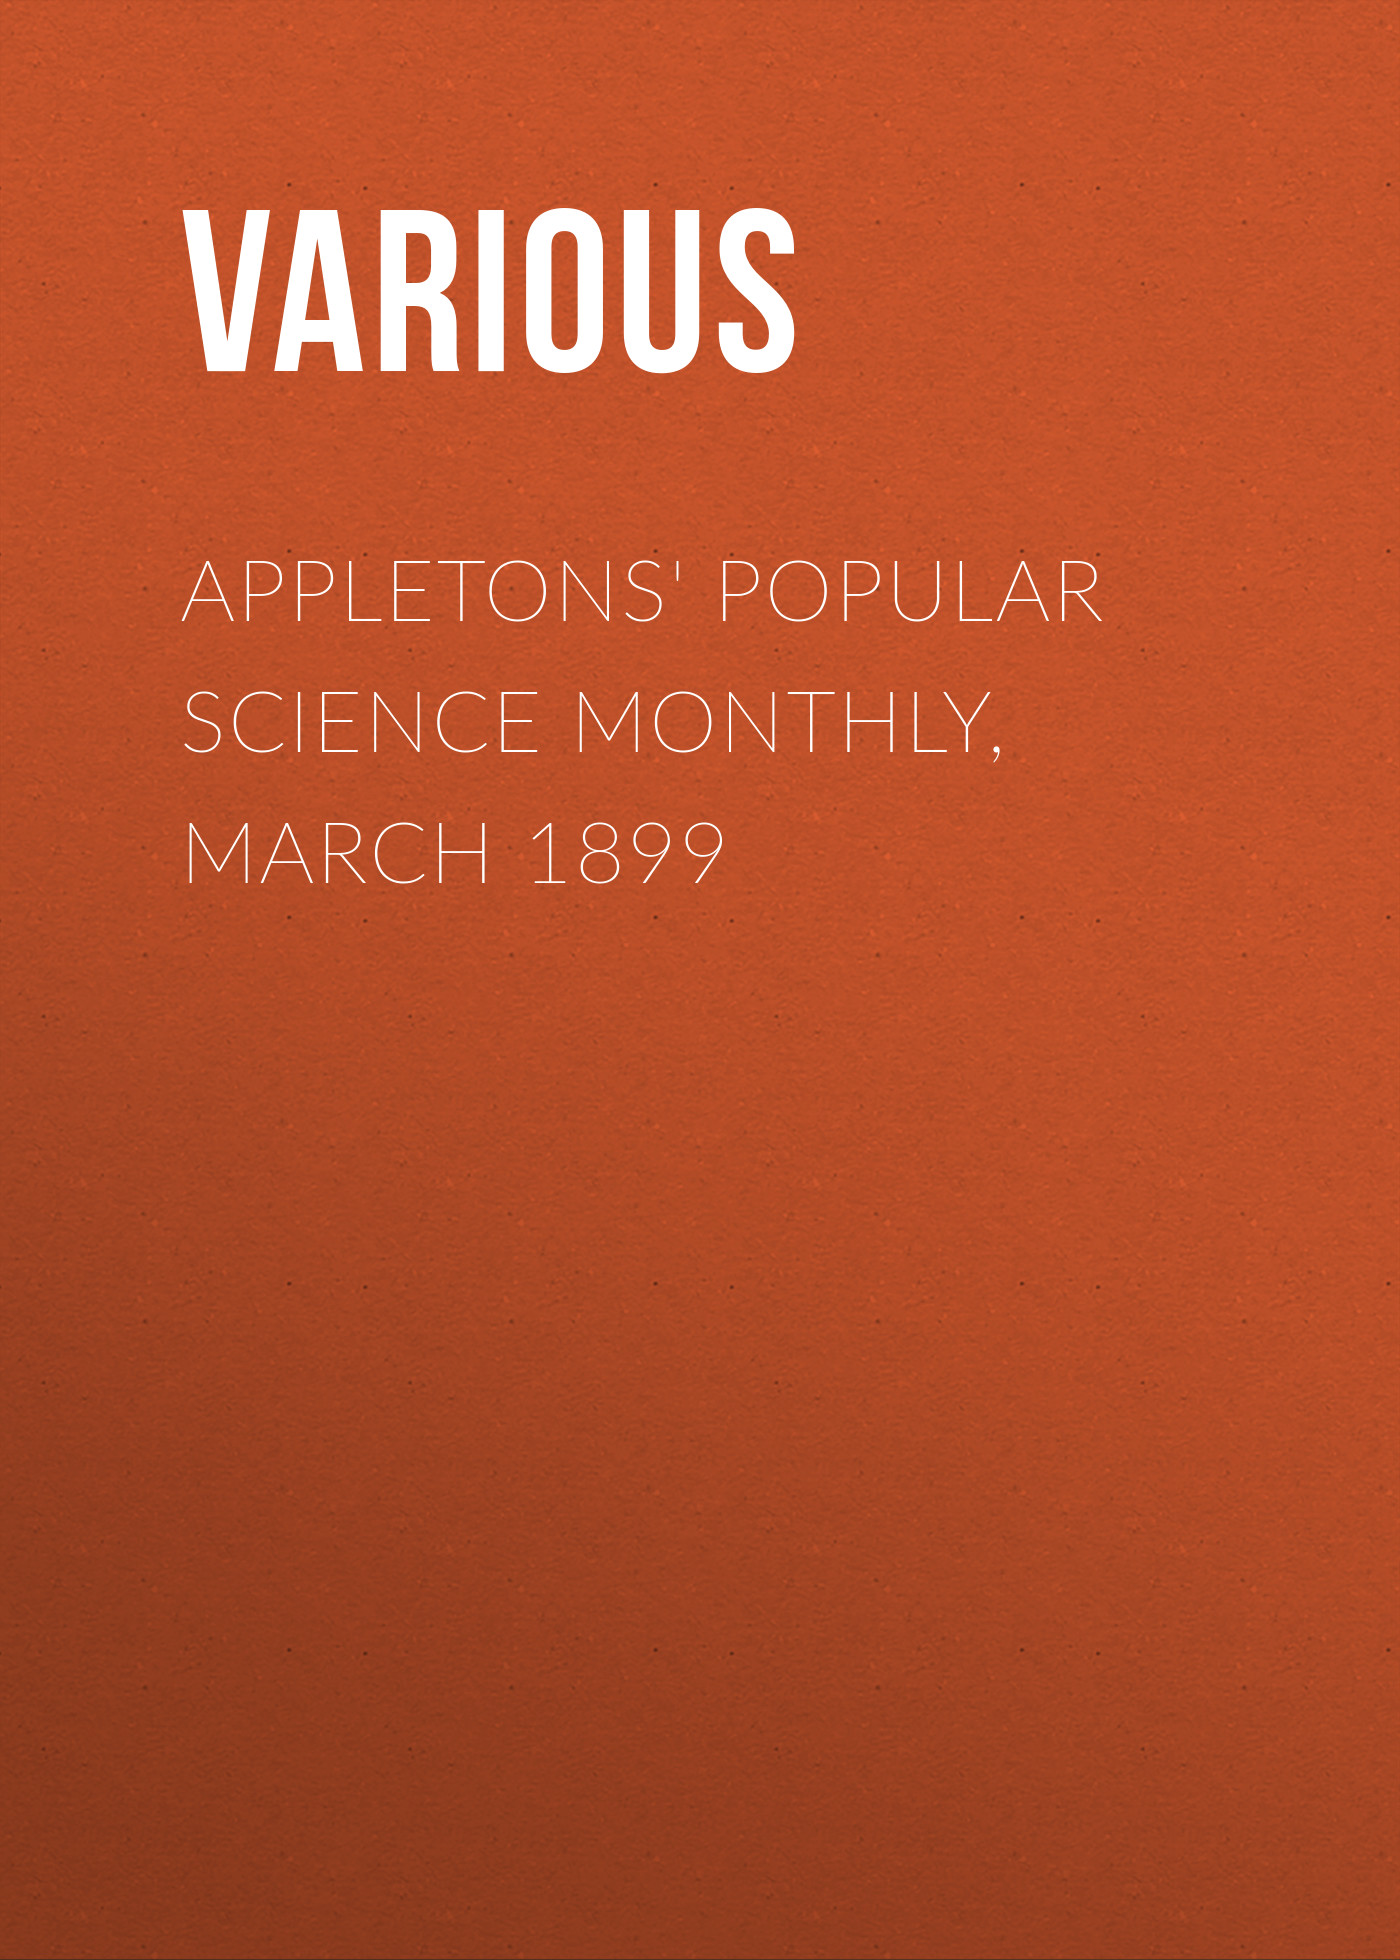 Various Appletons' Popular Science Monthly, March 1899